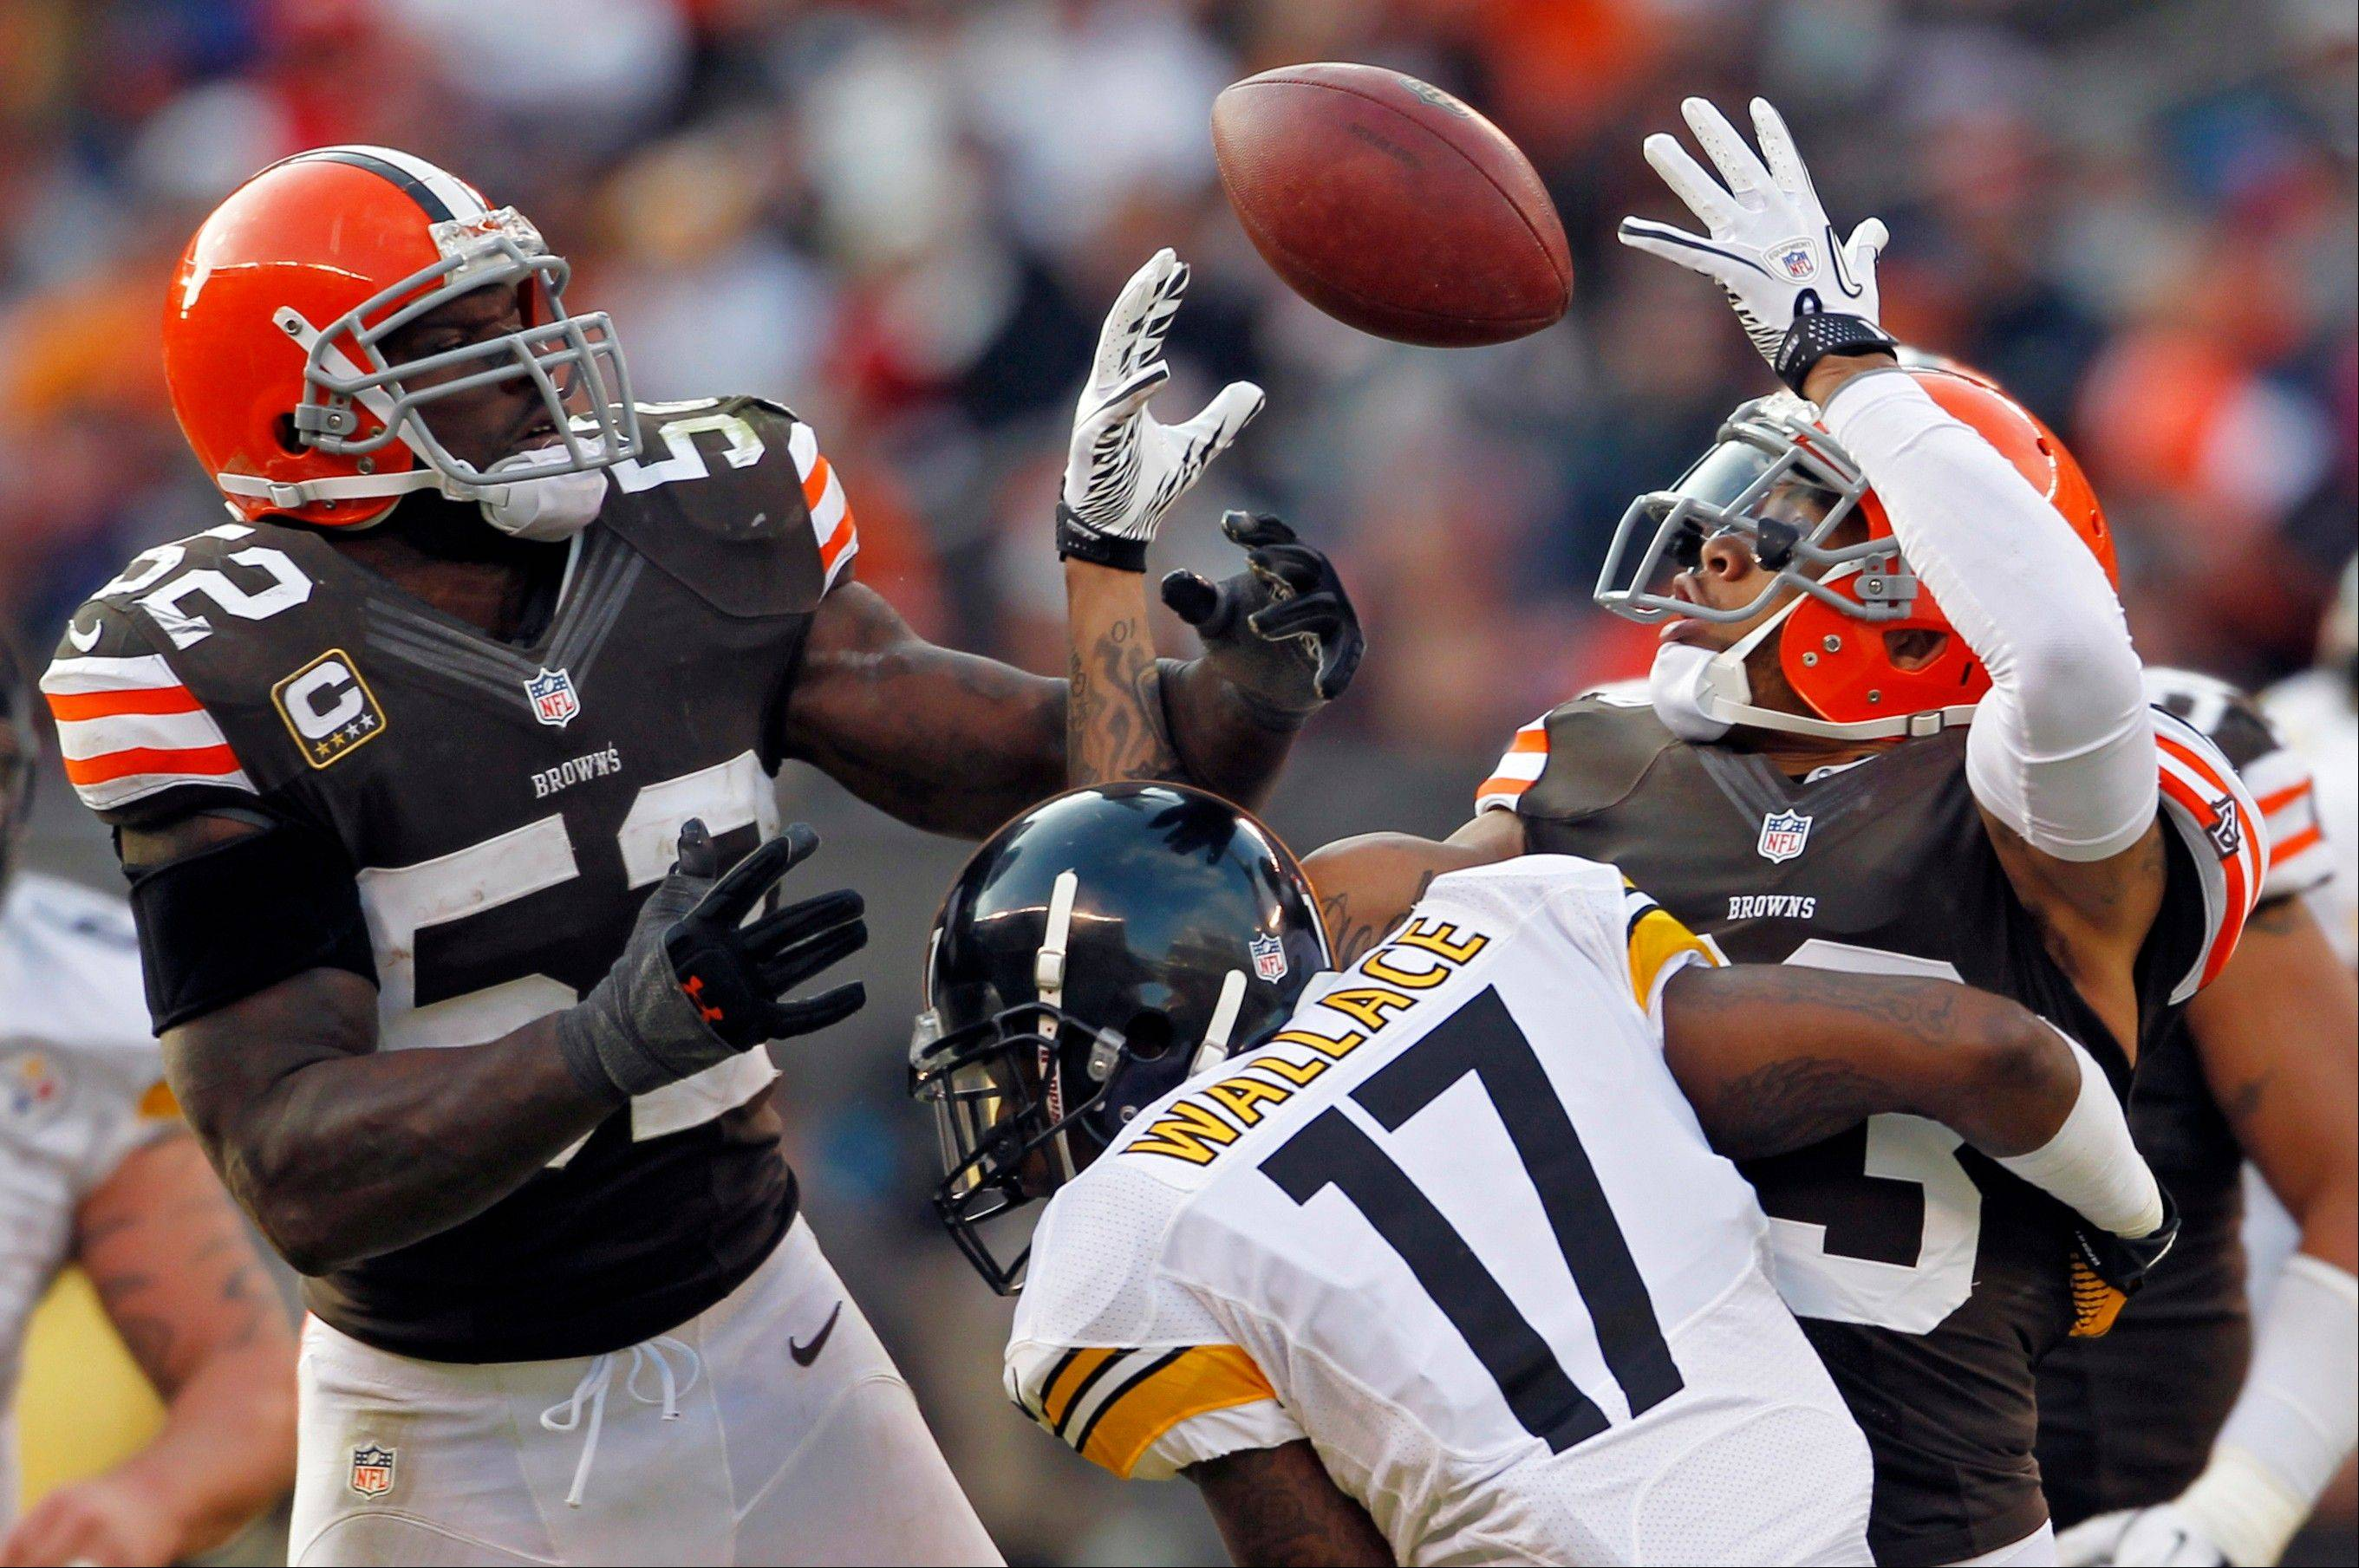 Cleveland Browns linebacker D'Qwell Jackson (52) and cornerback Joe Haden break up a pass to Pittsburgh Steelers wide receiver Mike Wallace in the fourth quarter Sunday in Cleveland. The tipped ball was recovered by Browns defensive tackle Billy Winn.